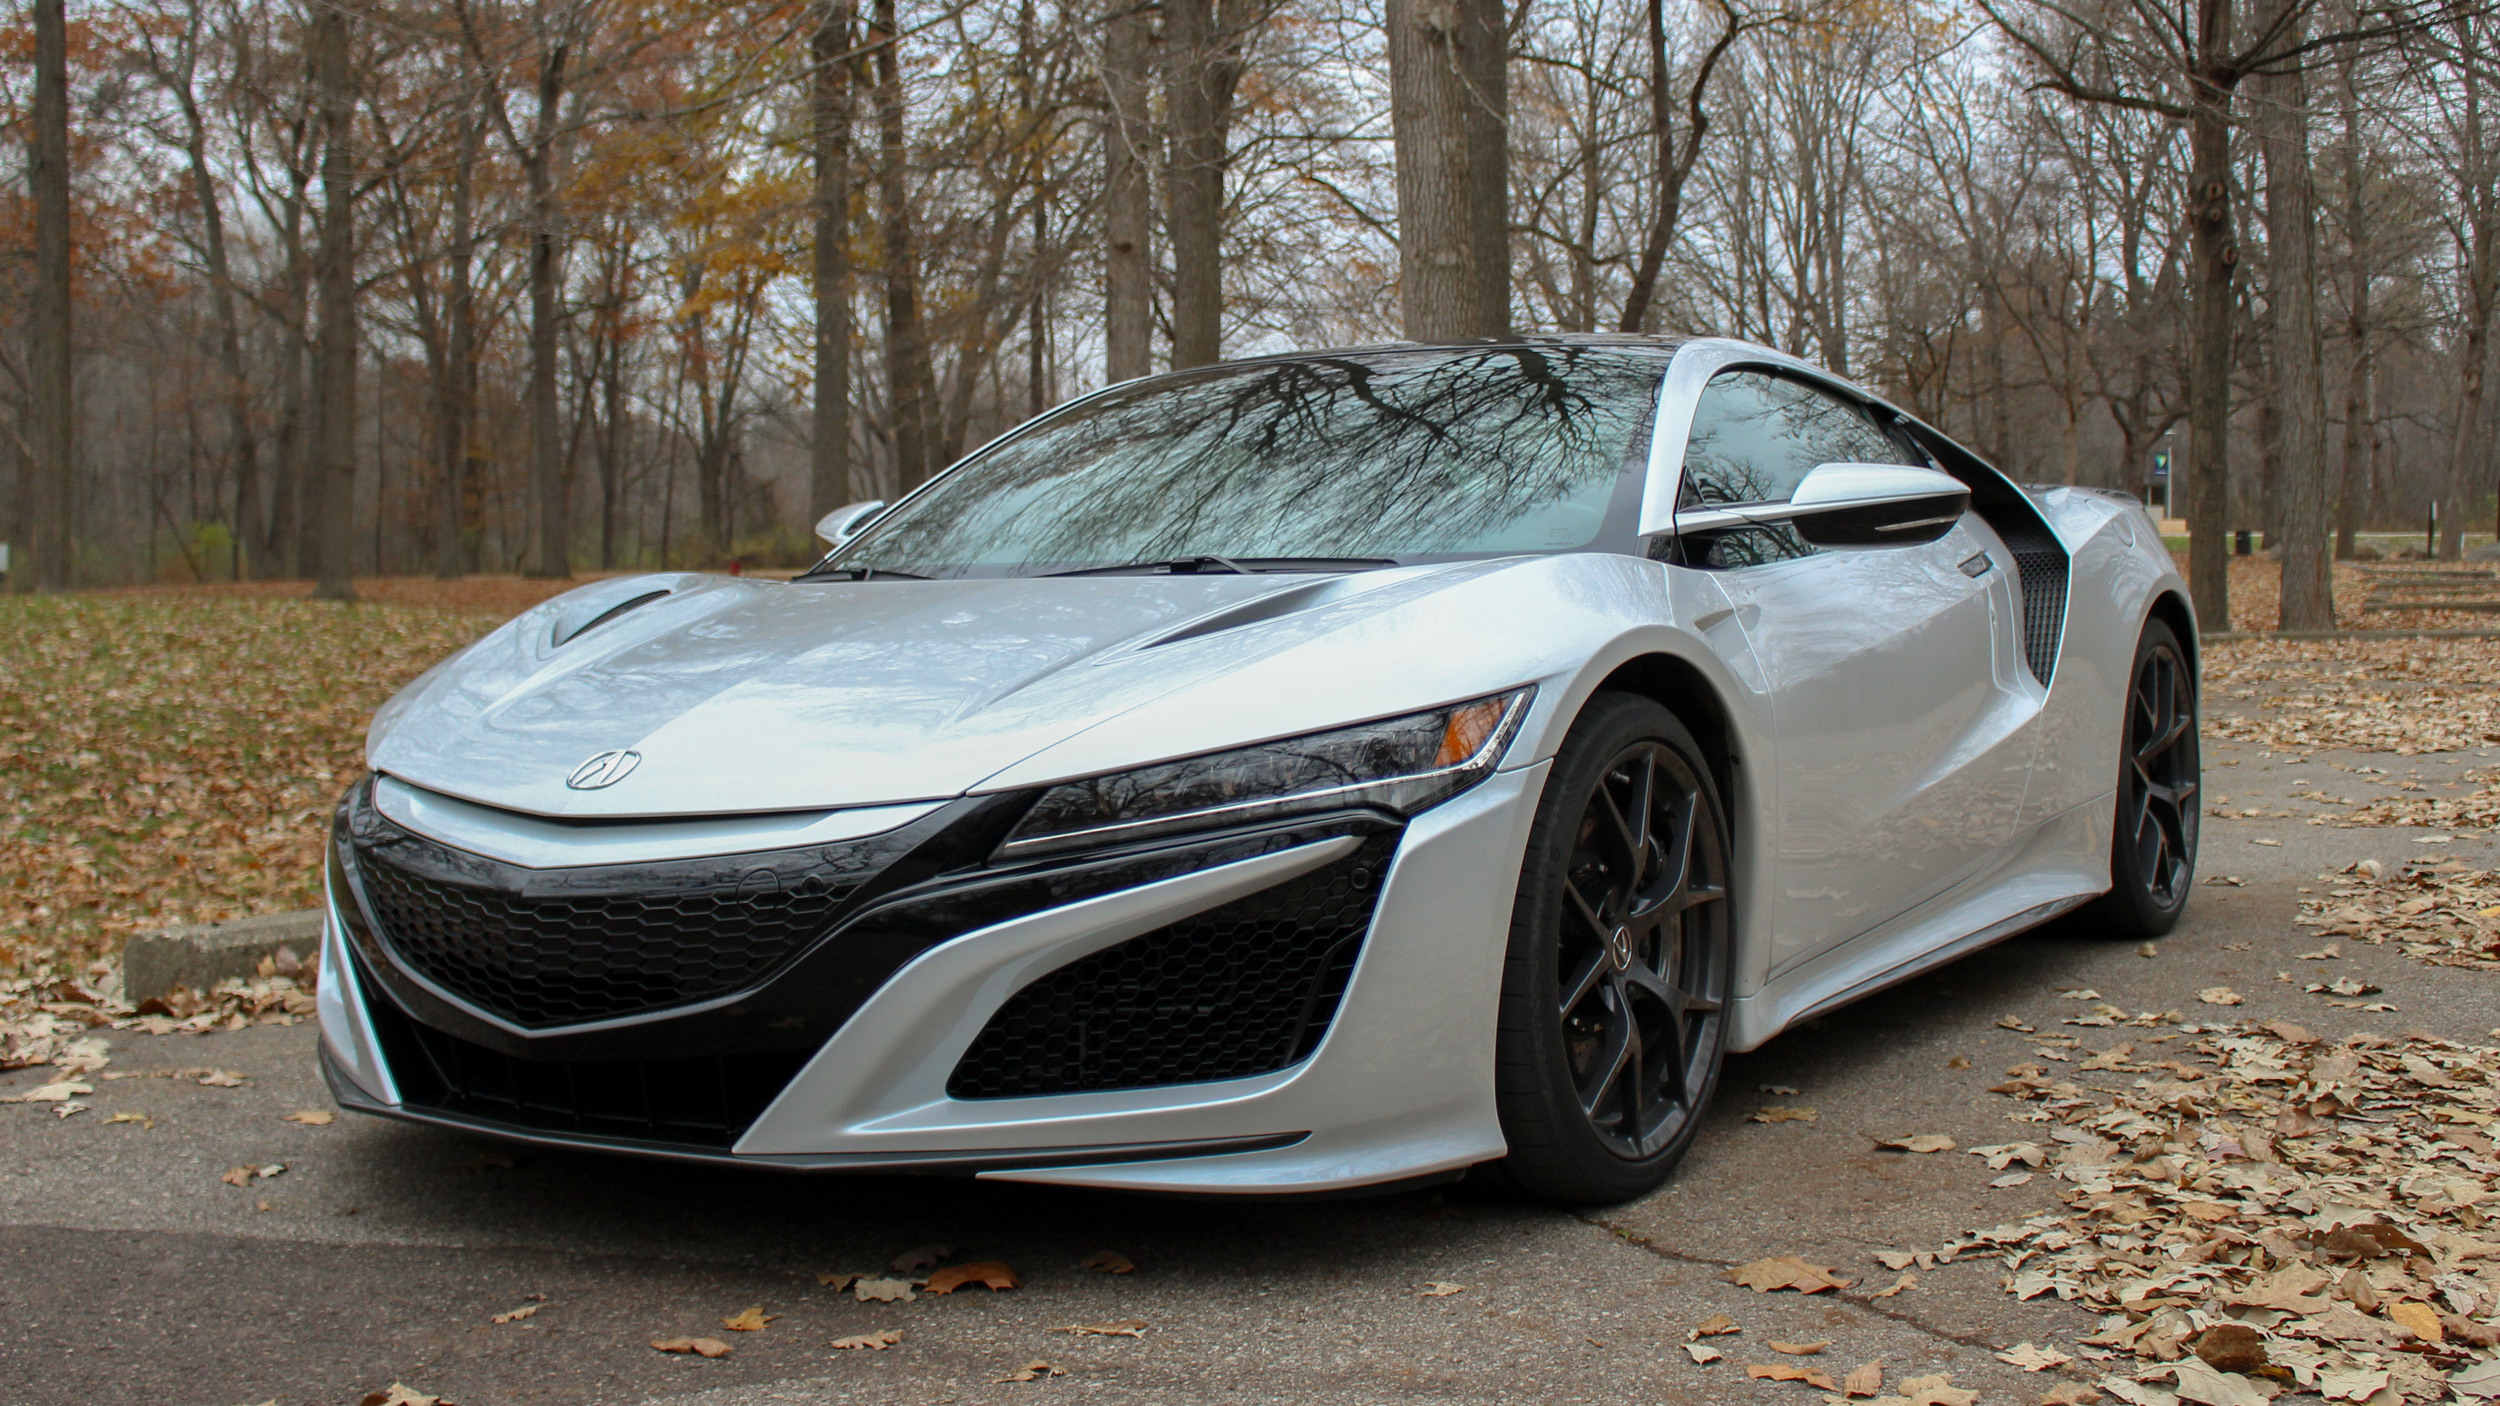 2019 Acura NSX gets $20,000 discount after slow 2018 sales ...